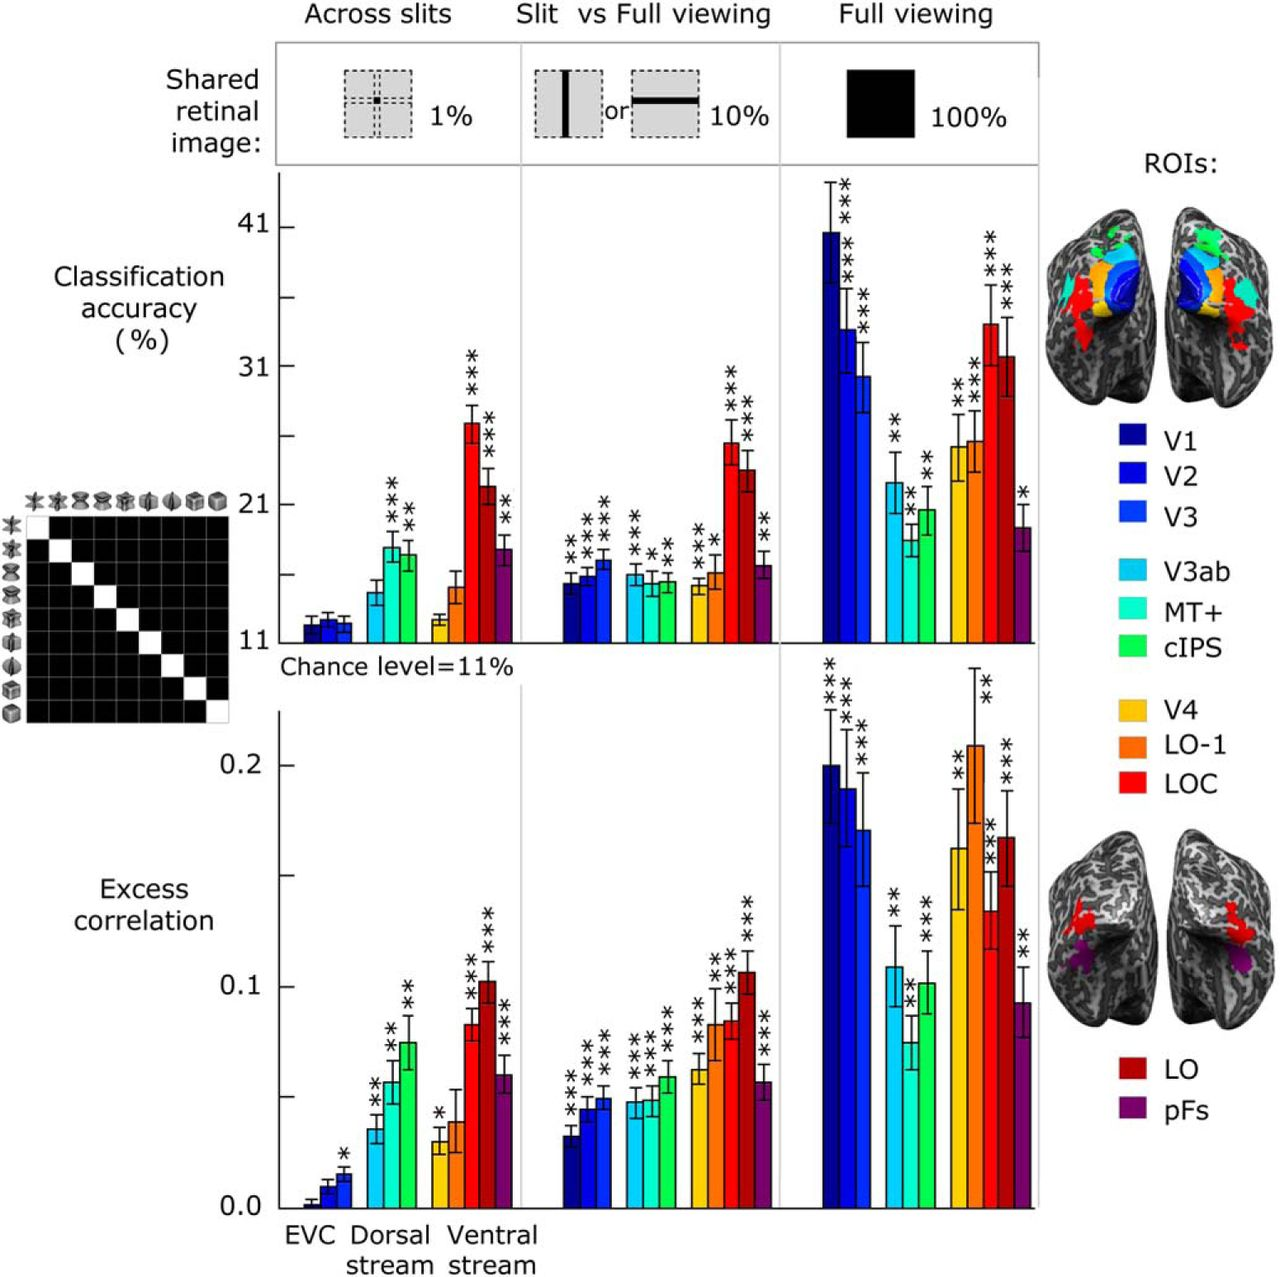 Object Representations in Human Visual Cortex Formed Through